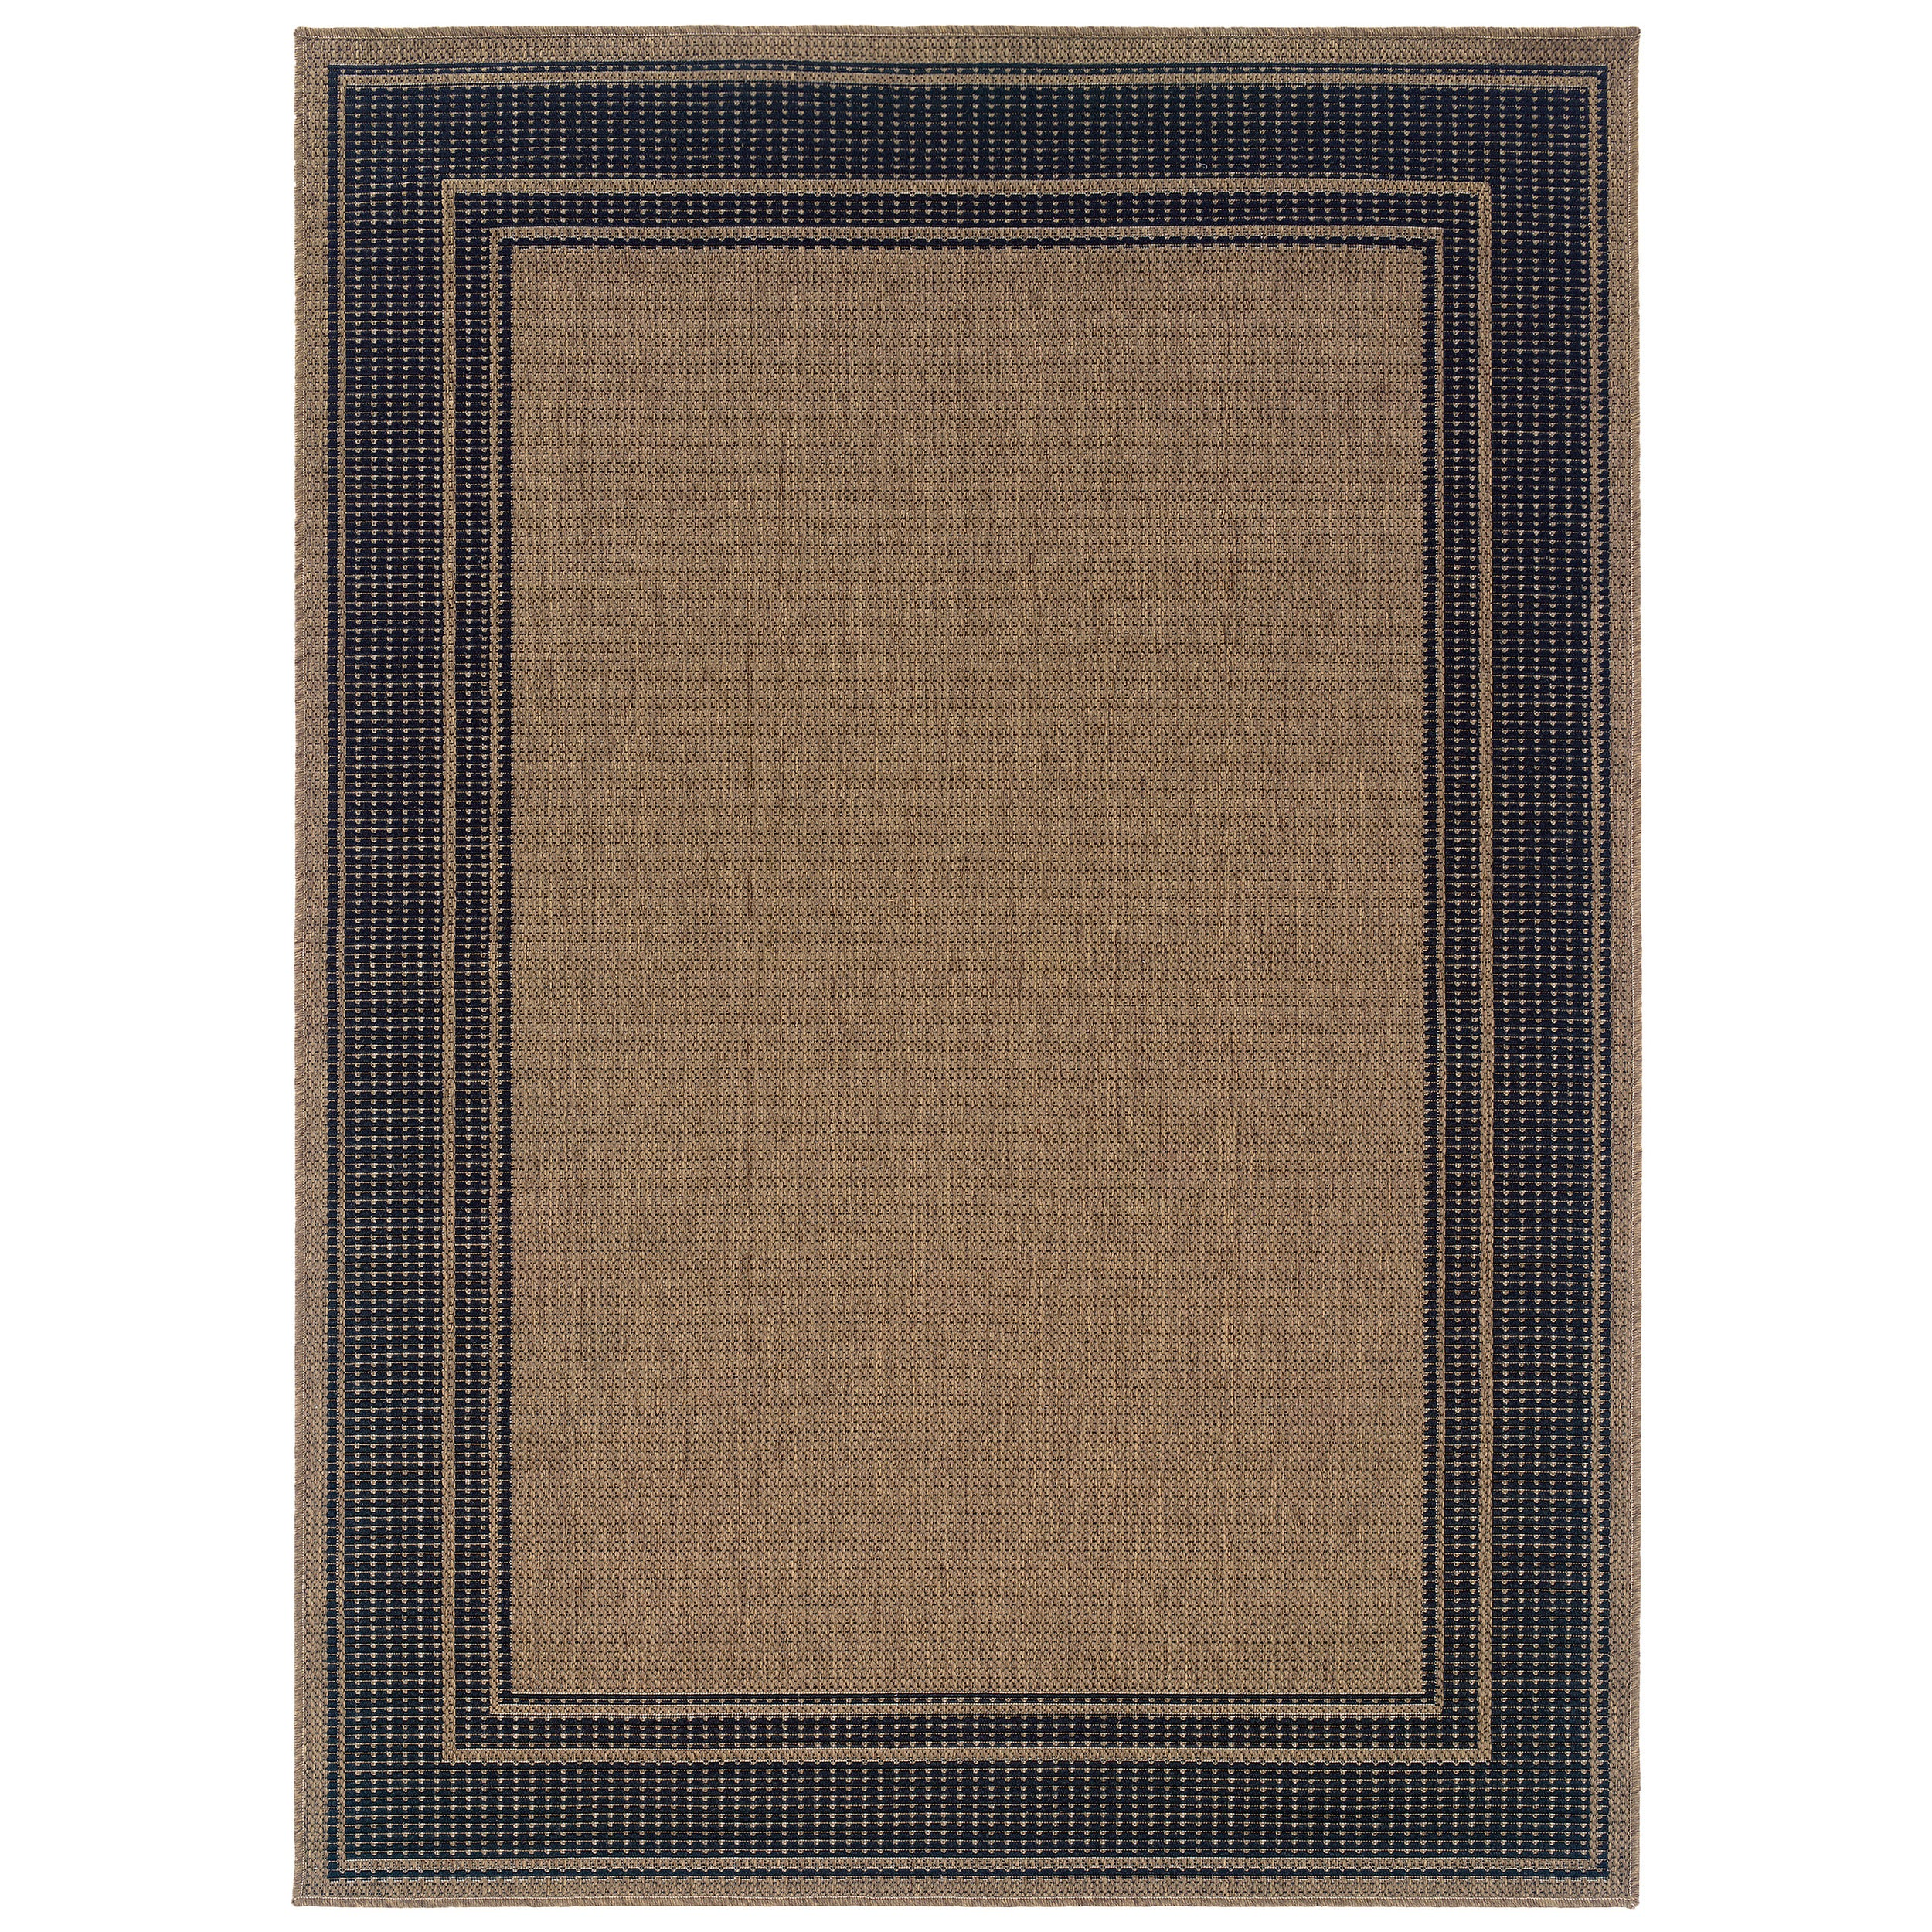 8x10 Indoor Outdoor Area Rugs: Indoor & Tan/ Black Outdoor Area Rug (8' X 10')